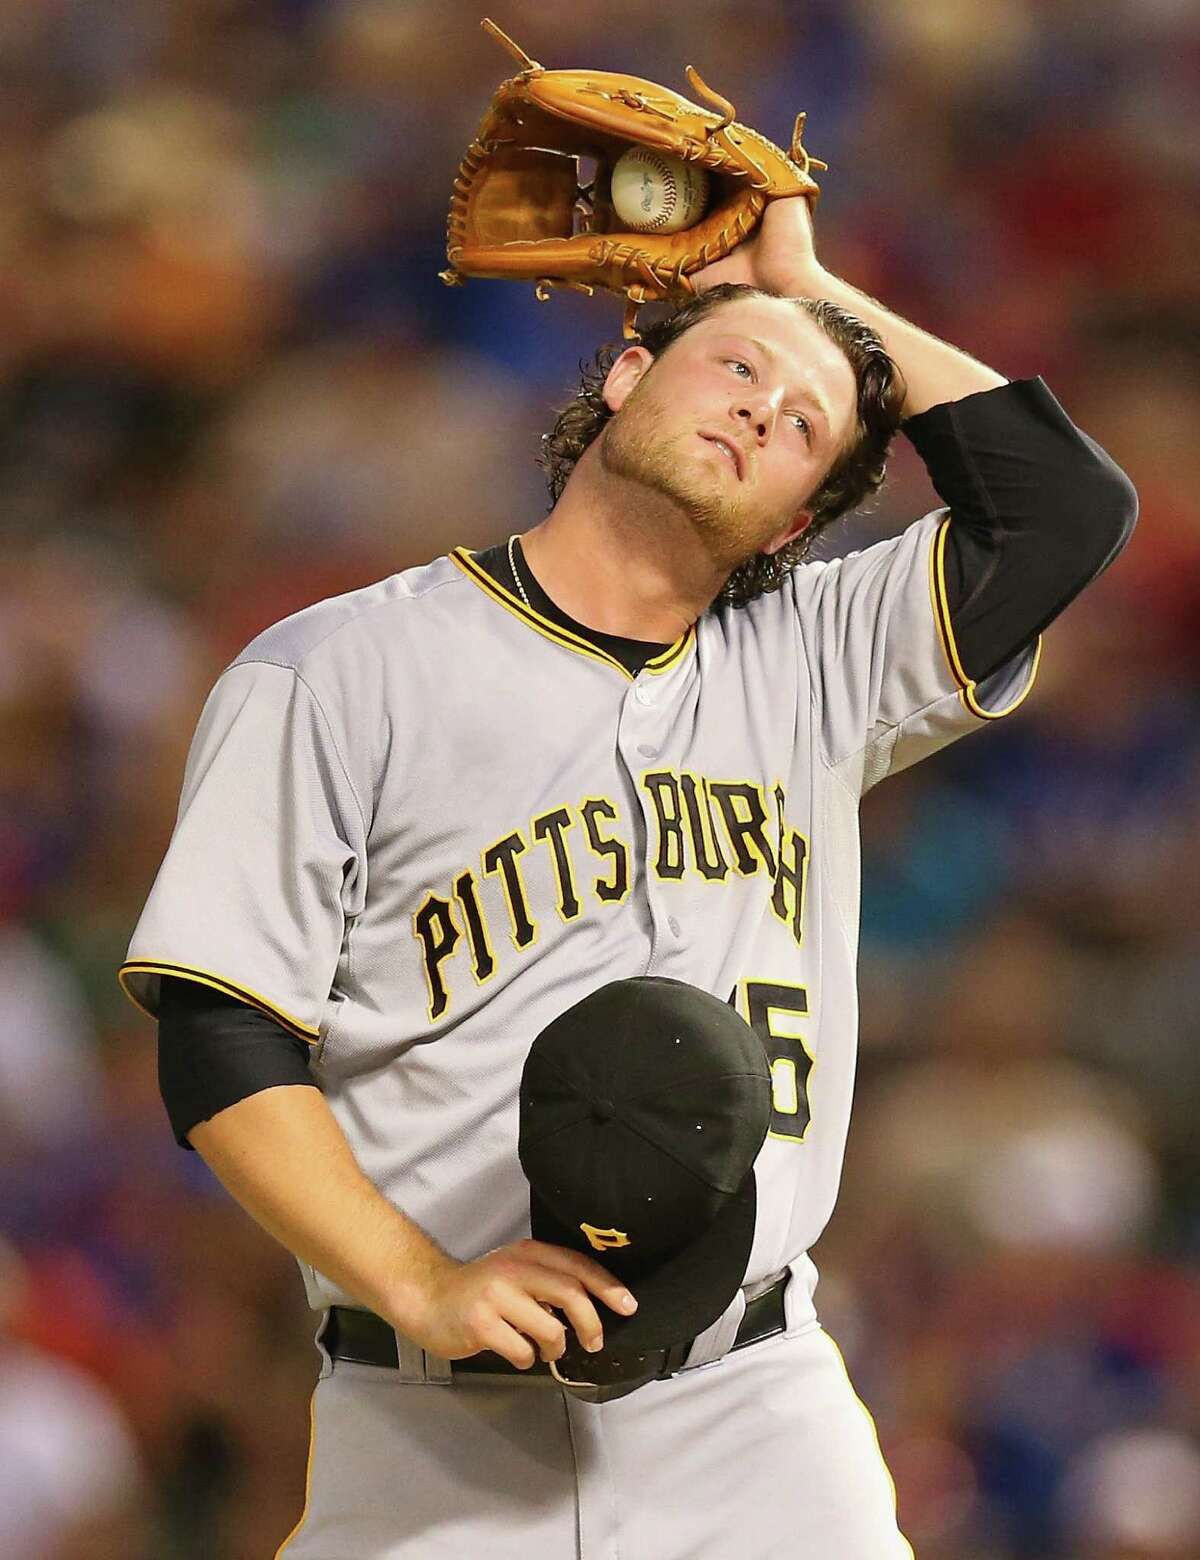 Pittsburgh's Gerrit Cole pitched seven shutout innings in a victory over Texas in Arlington.